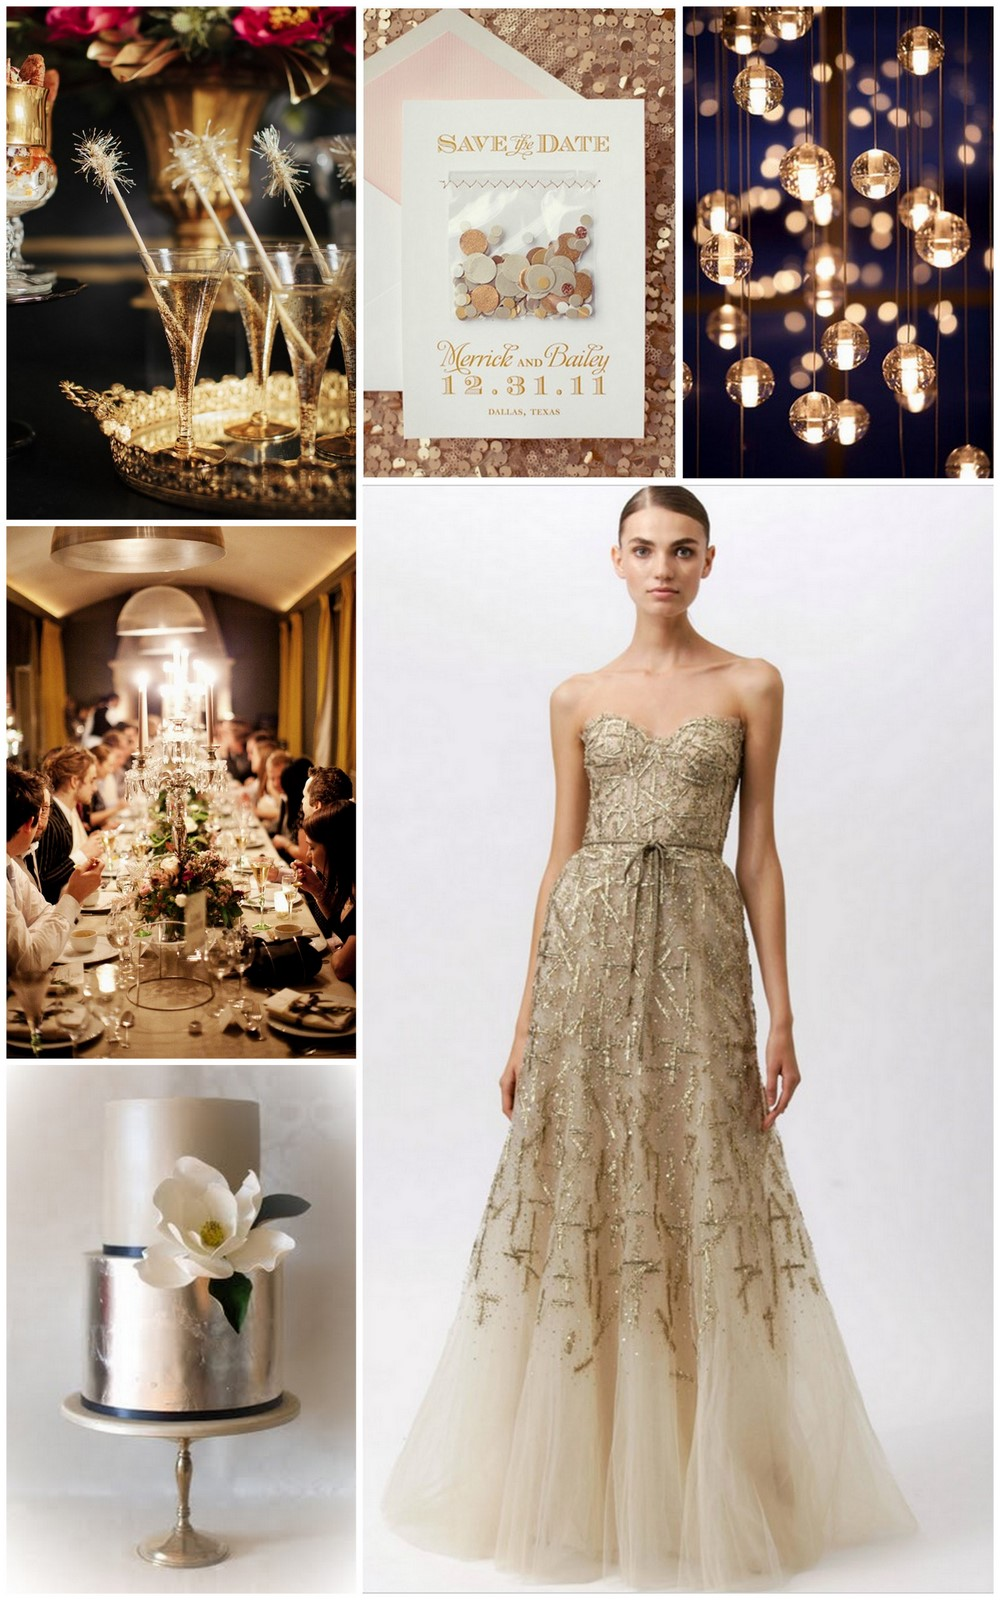 New Year S Eve Wedding Kindred Event Studio Event And Wedding Planners In Waco Texas,Wedding Dress Netting Fabric